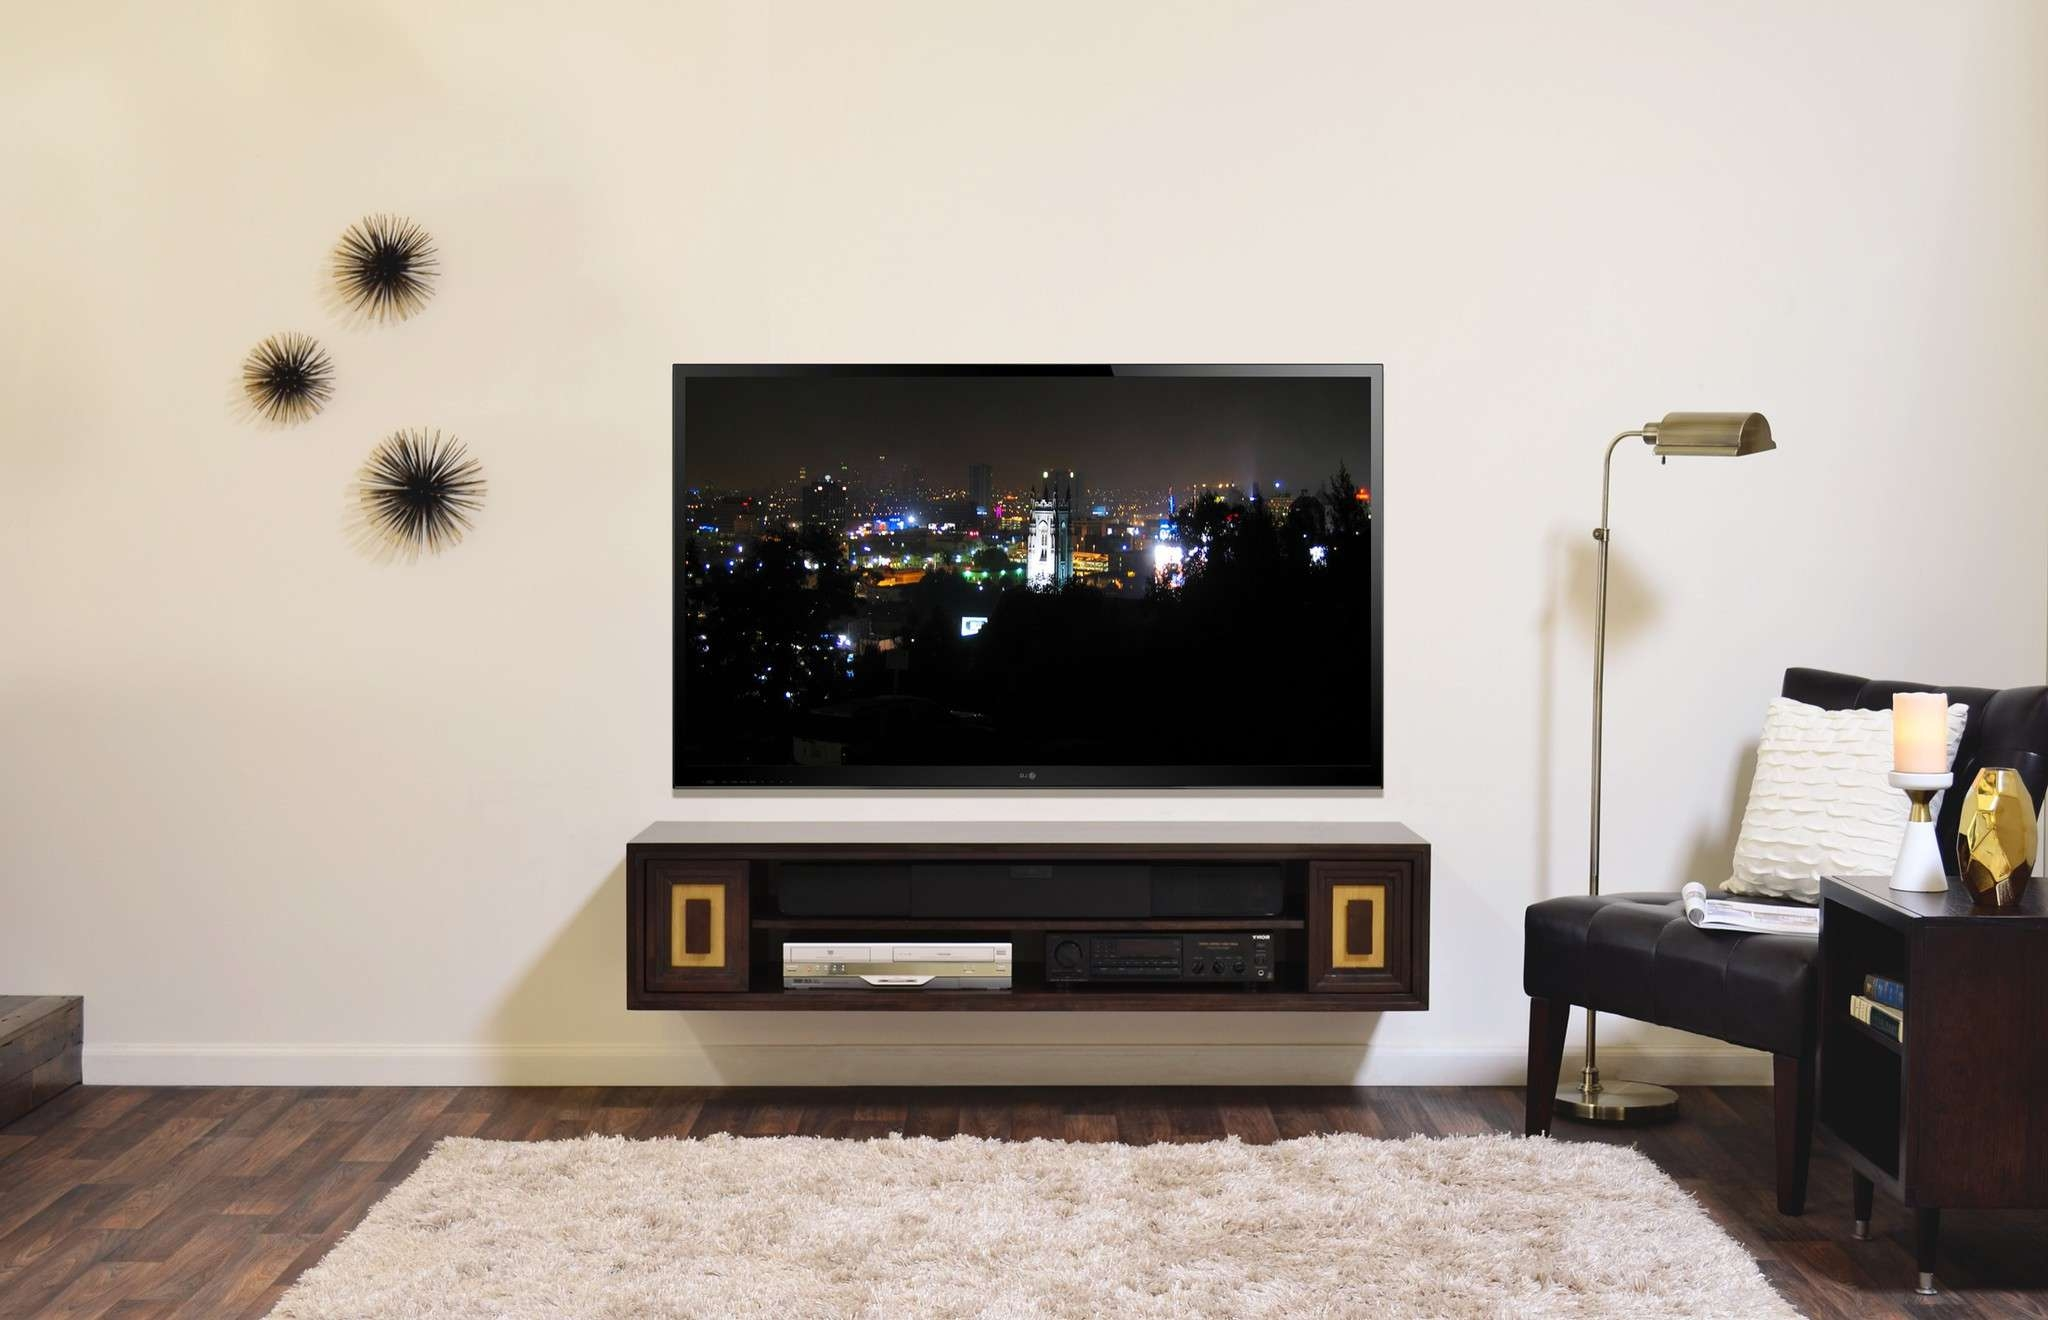 ✓ White High Gloss Finish Wooden Tv Cabinet Stand Set With, Tv Throughout Wooden Tv Cabinets (View 14 of 20)